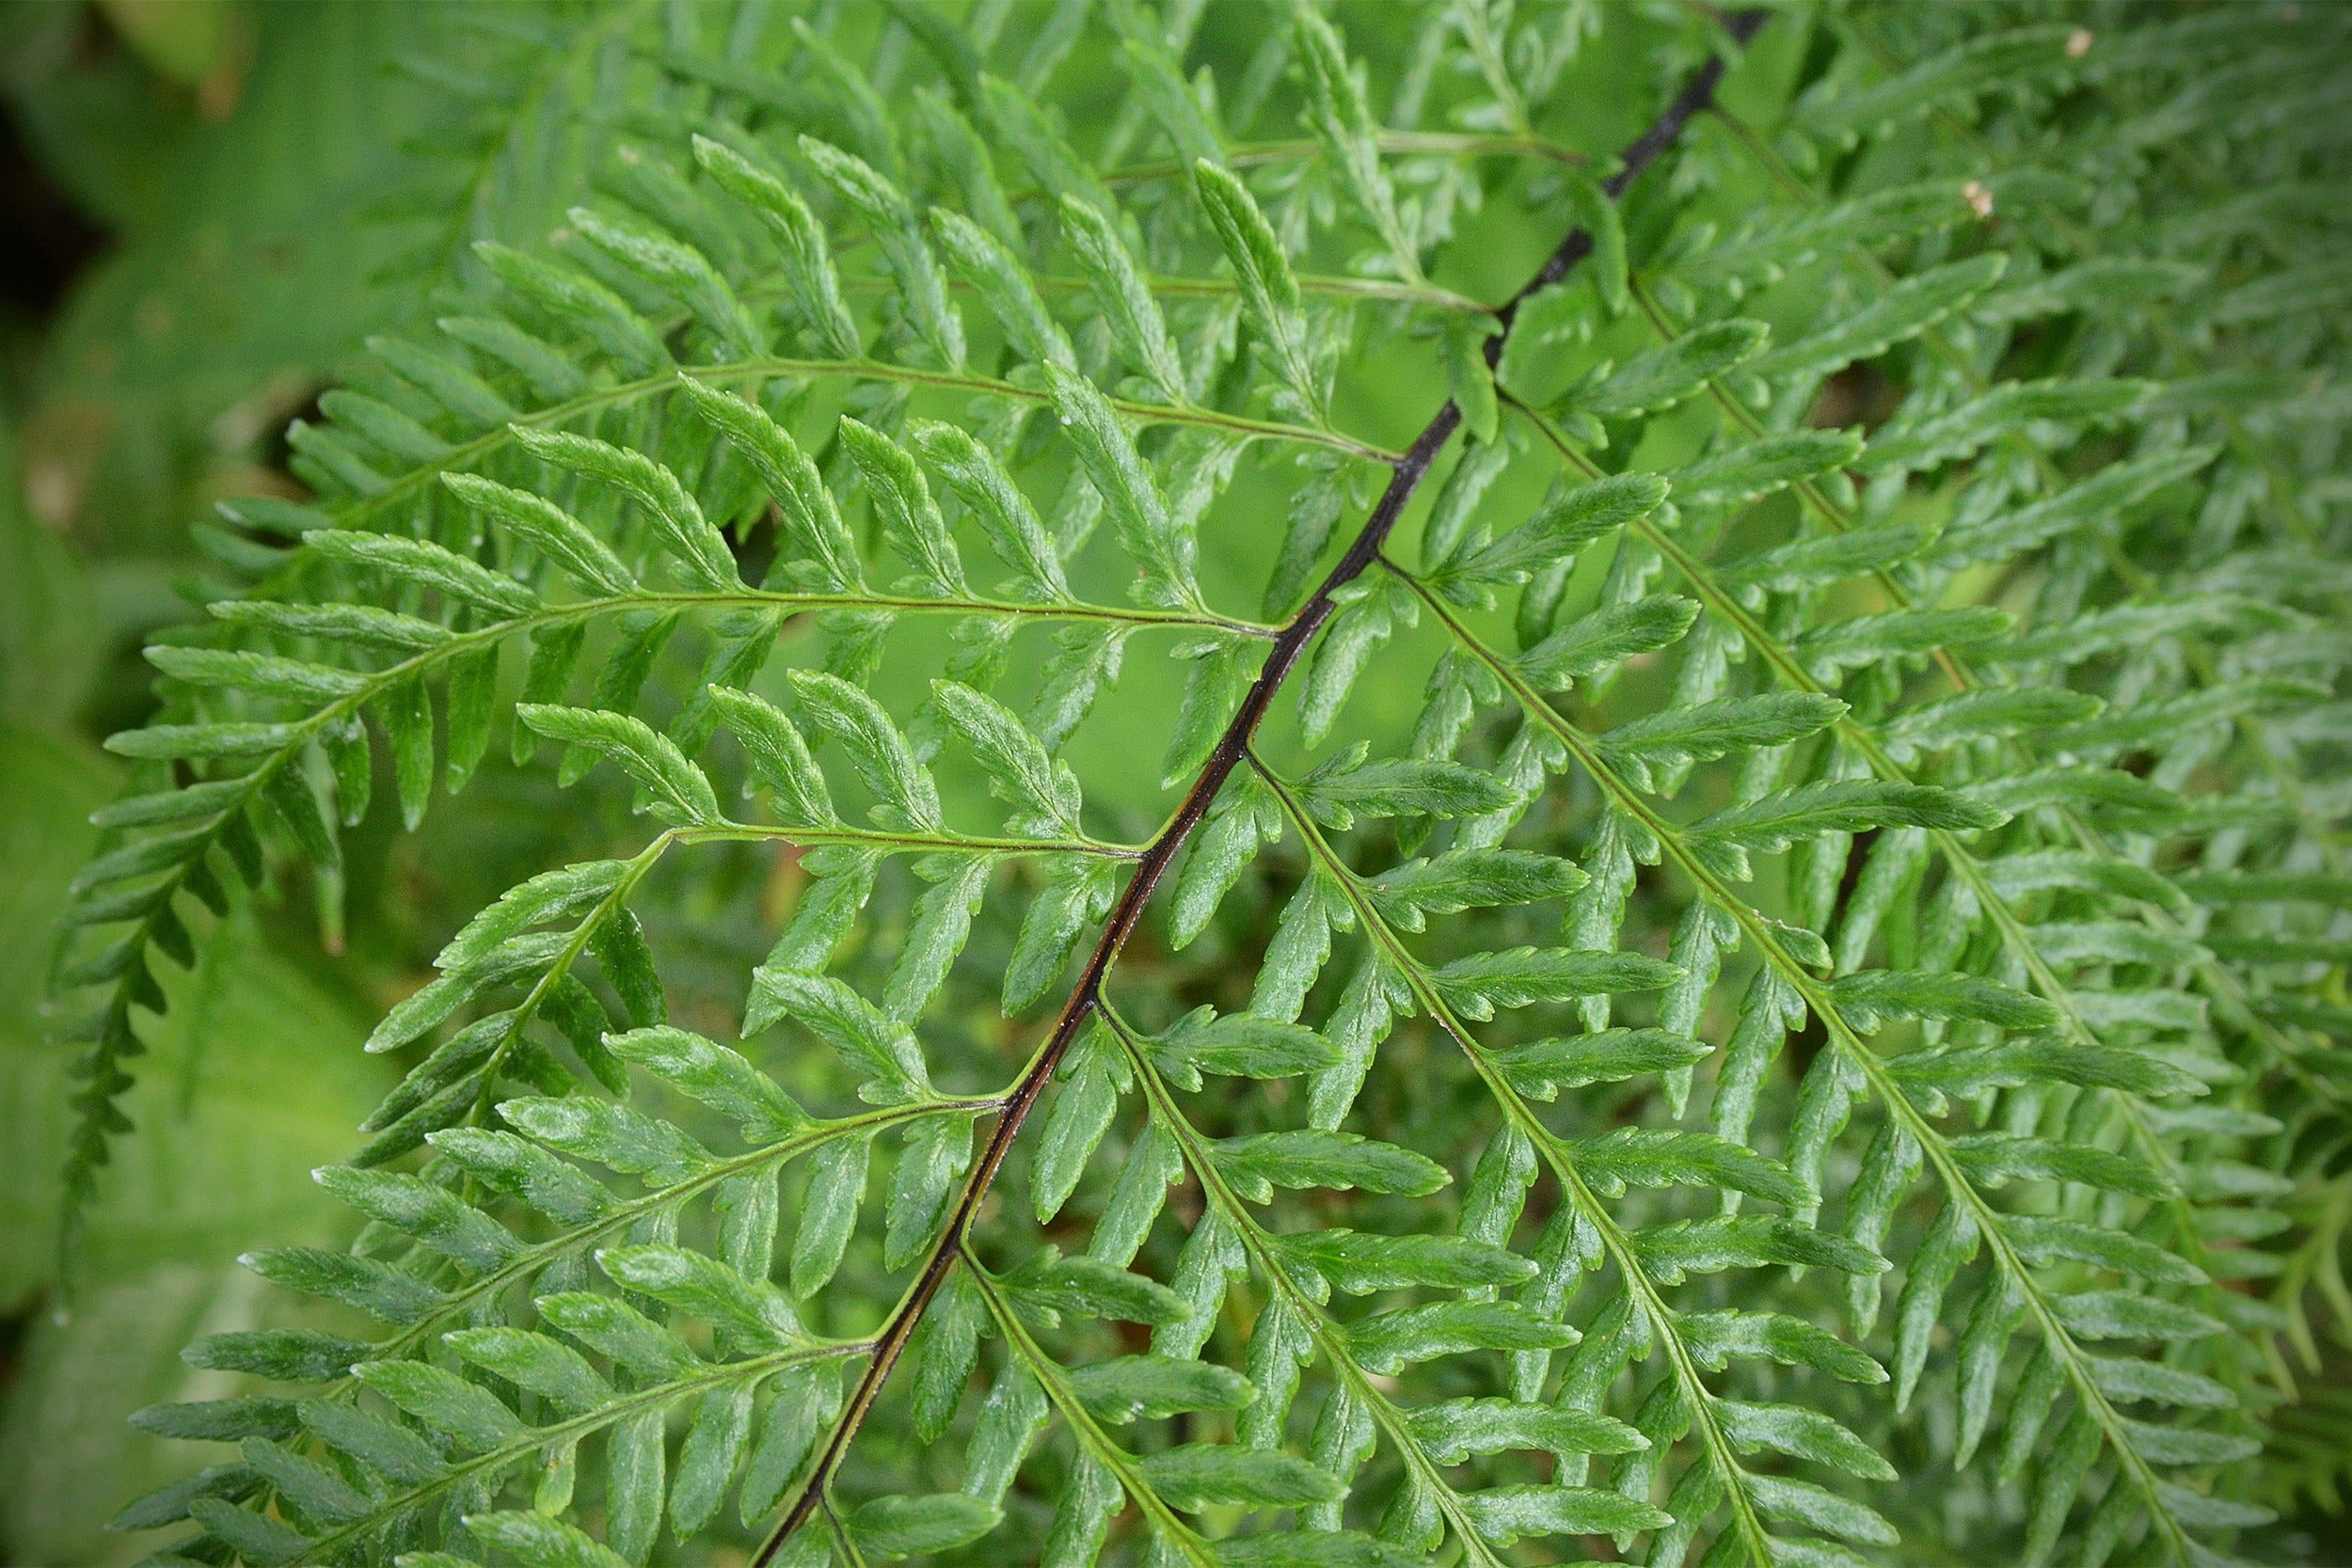 Closeup of a fern.